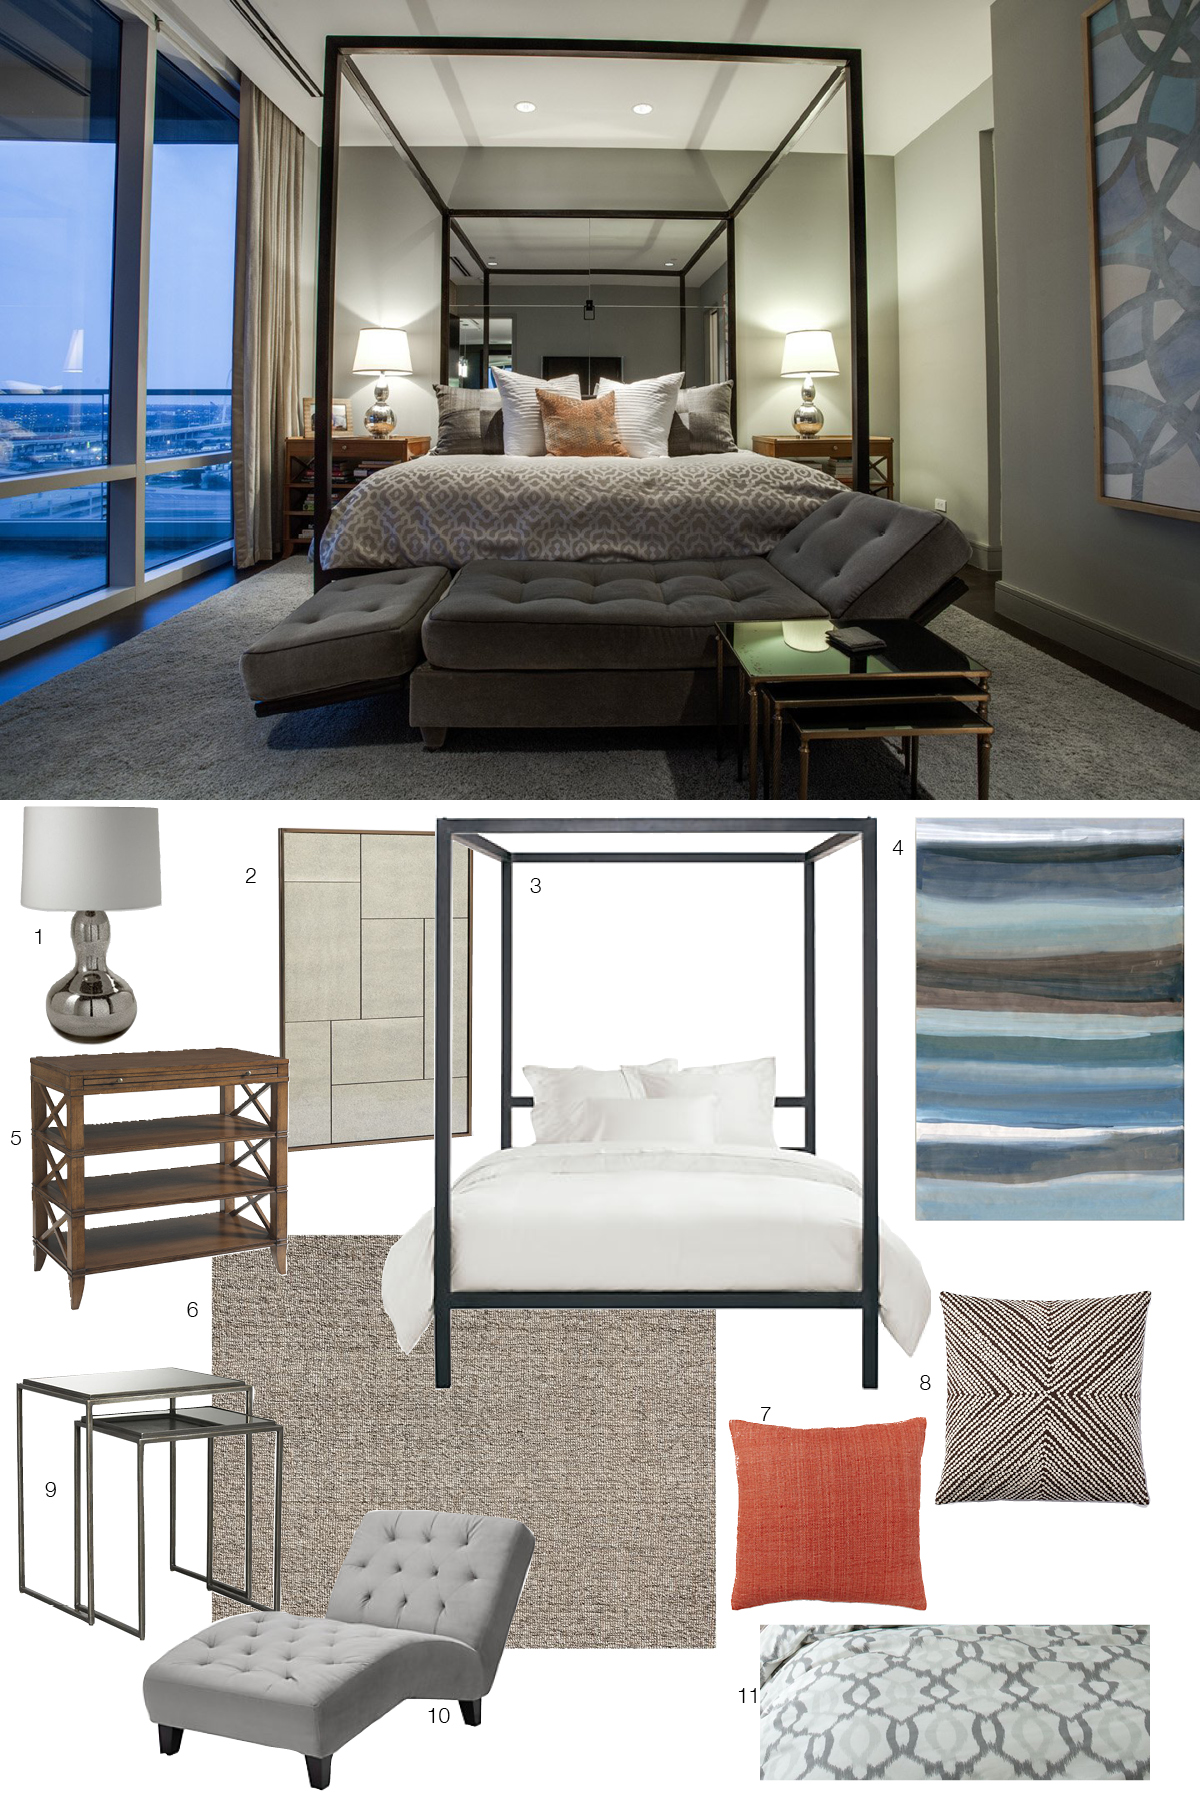 Room Re-do: High-Rise Luxury Bedroom